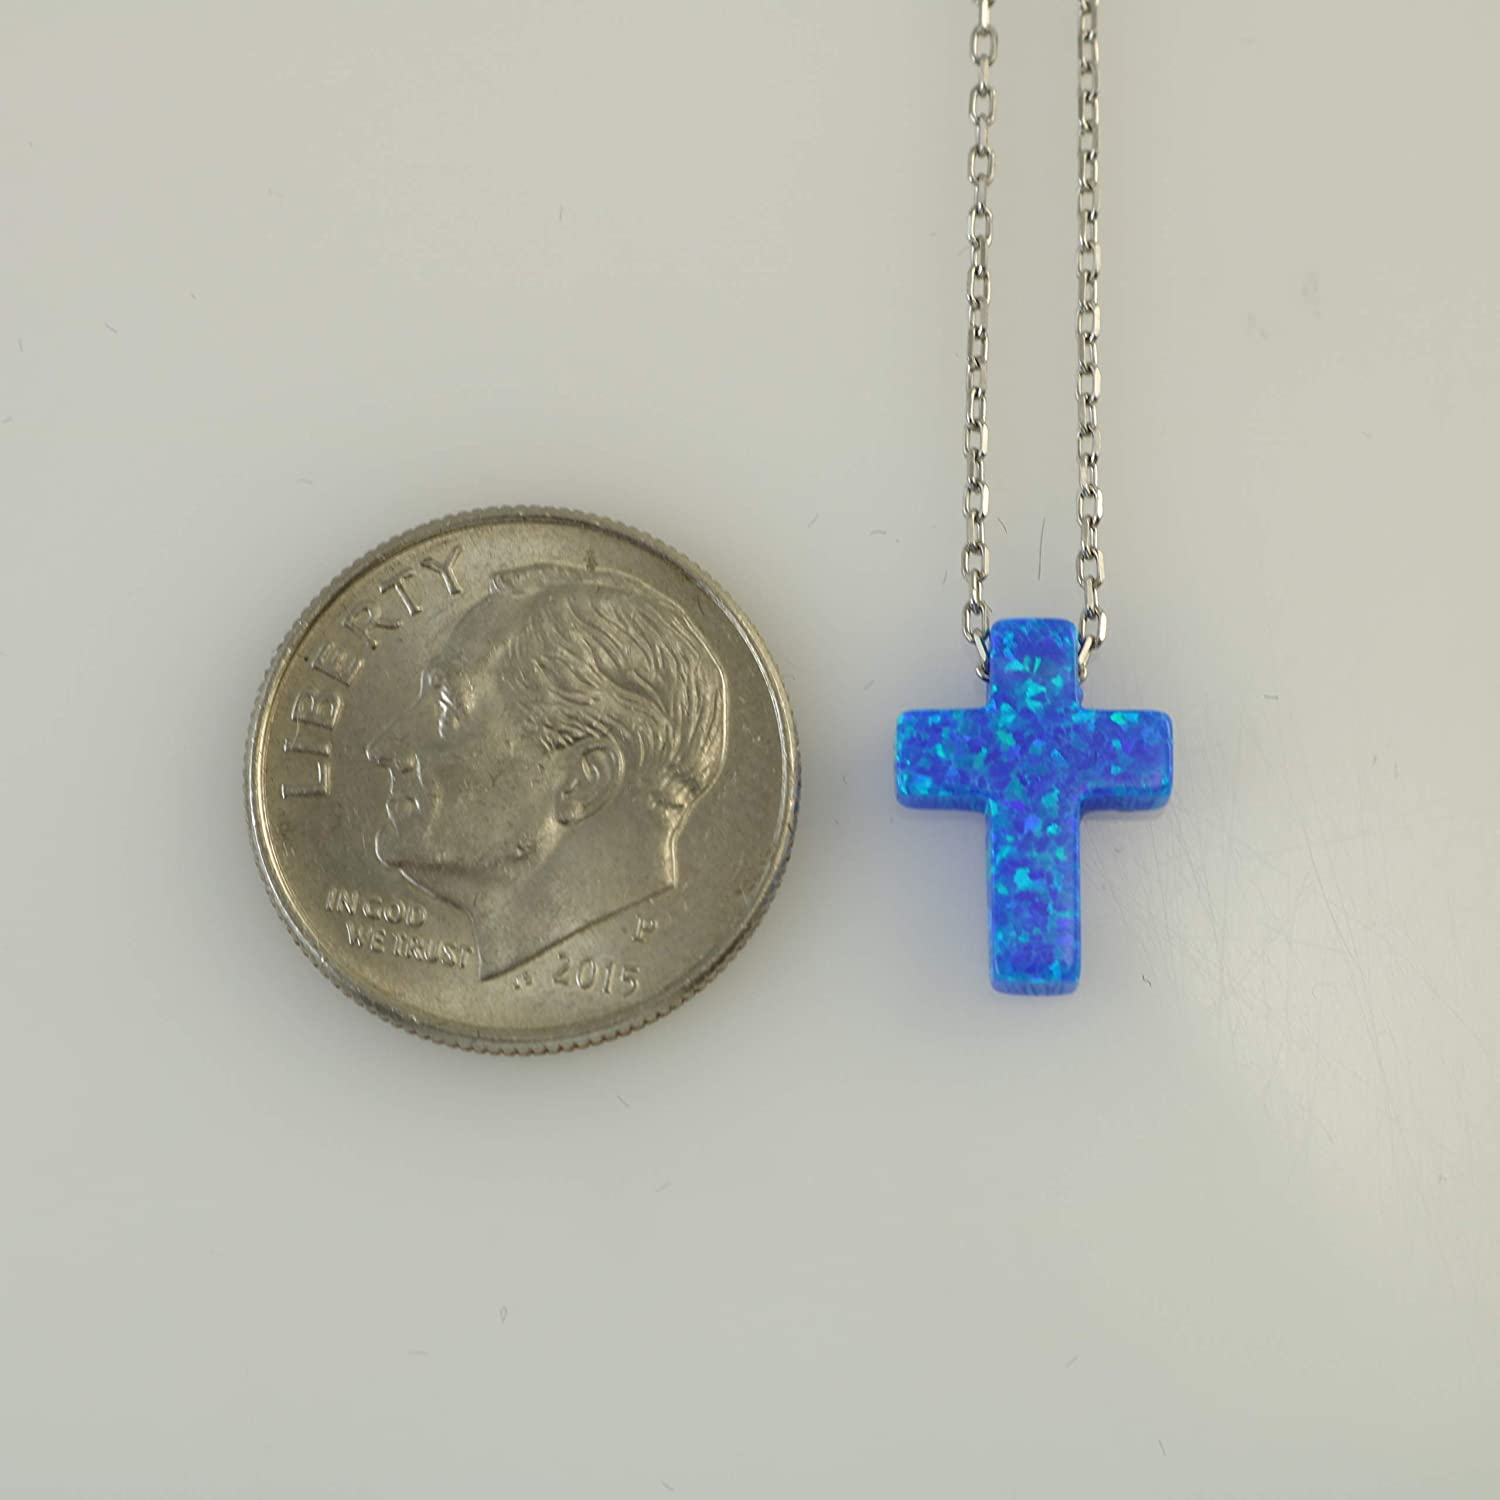 Tiny Dark Blue Opal Cross Pendant Necklace Religious Jewellery with 39.5cm-44cm 15.5-17.3 inches Sterling Silver Adjustable Chain by Handmade Studio